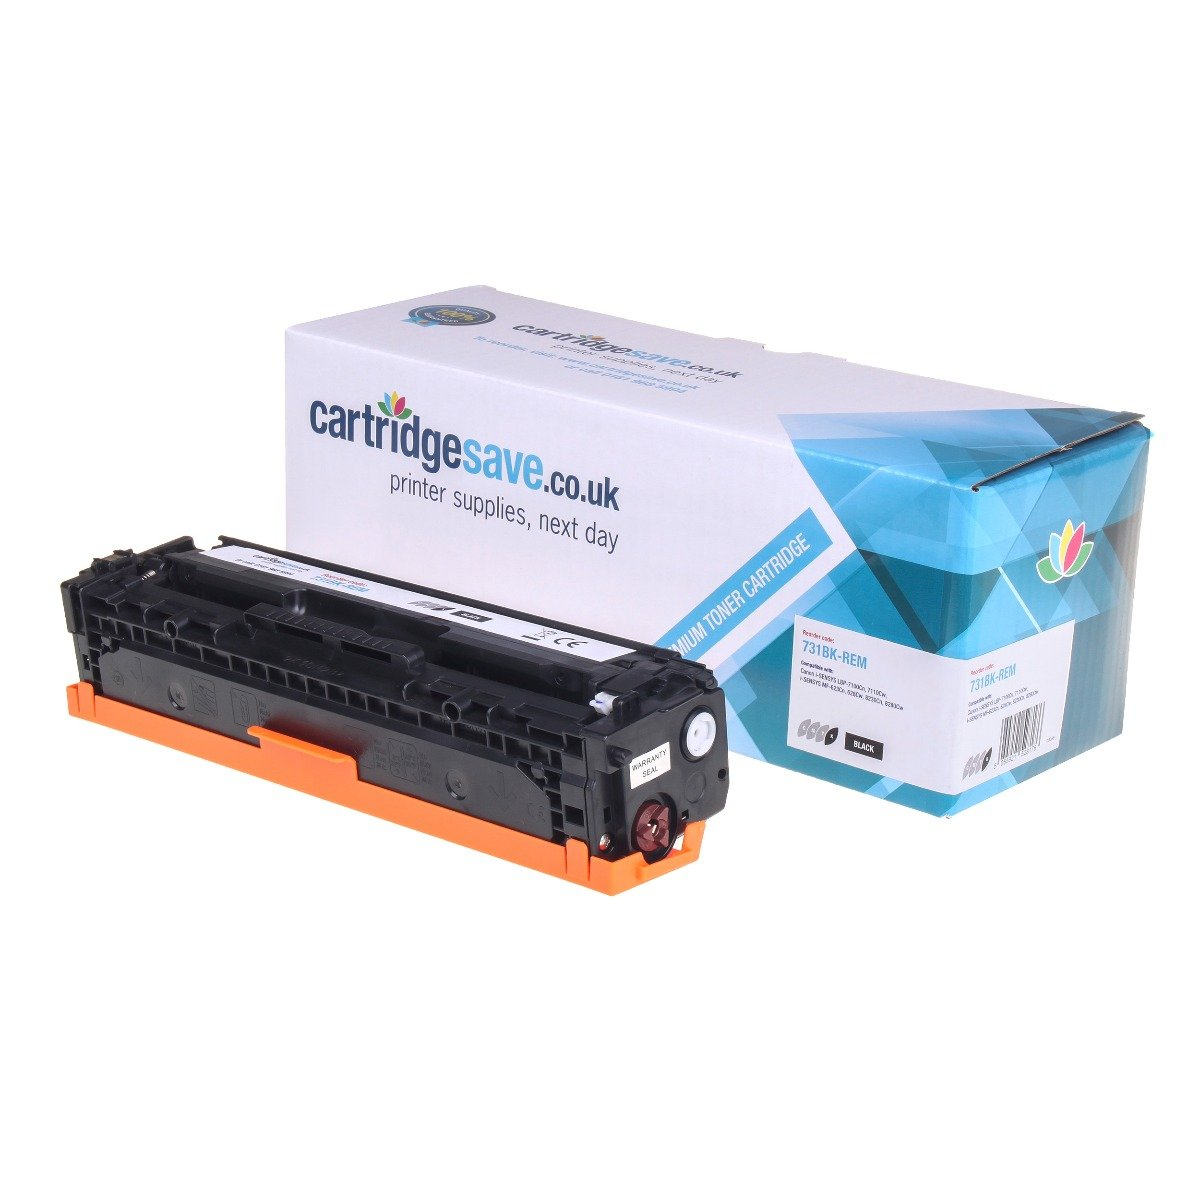 Compatible Black Canon 731BK Toner Cartridge - (6272B002)